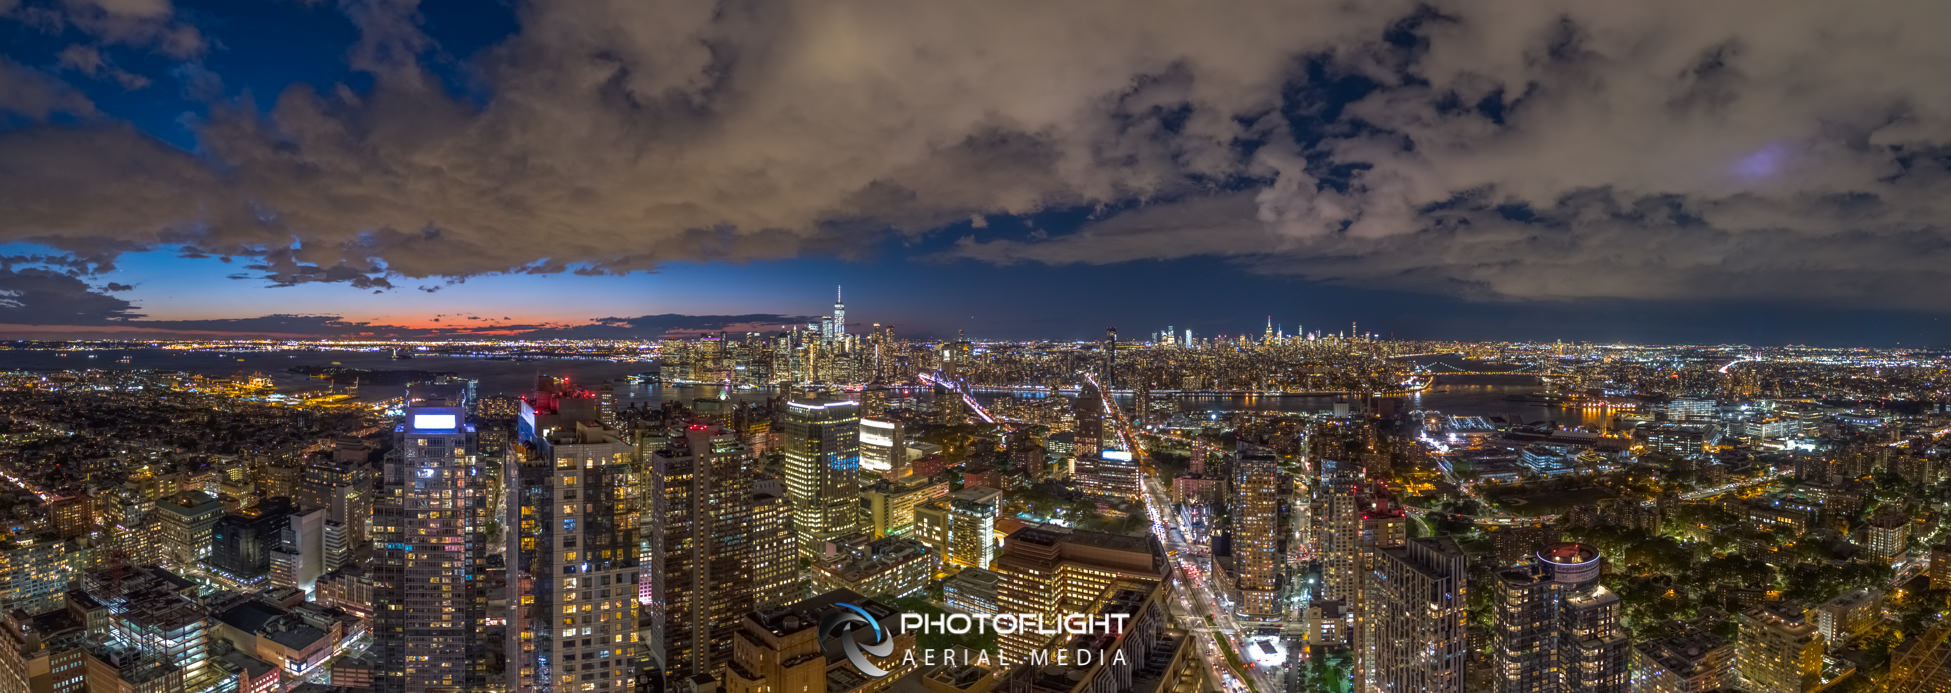 Manhattan Drone Photography - Twilight Panorama, NYC drone photography